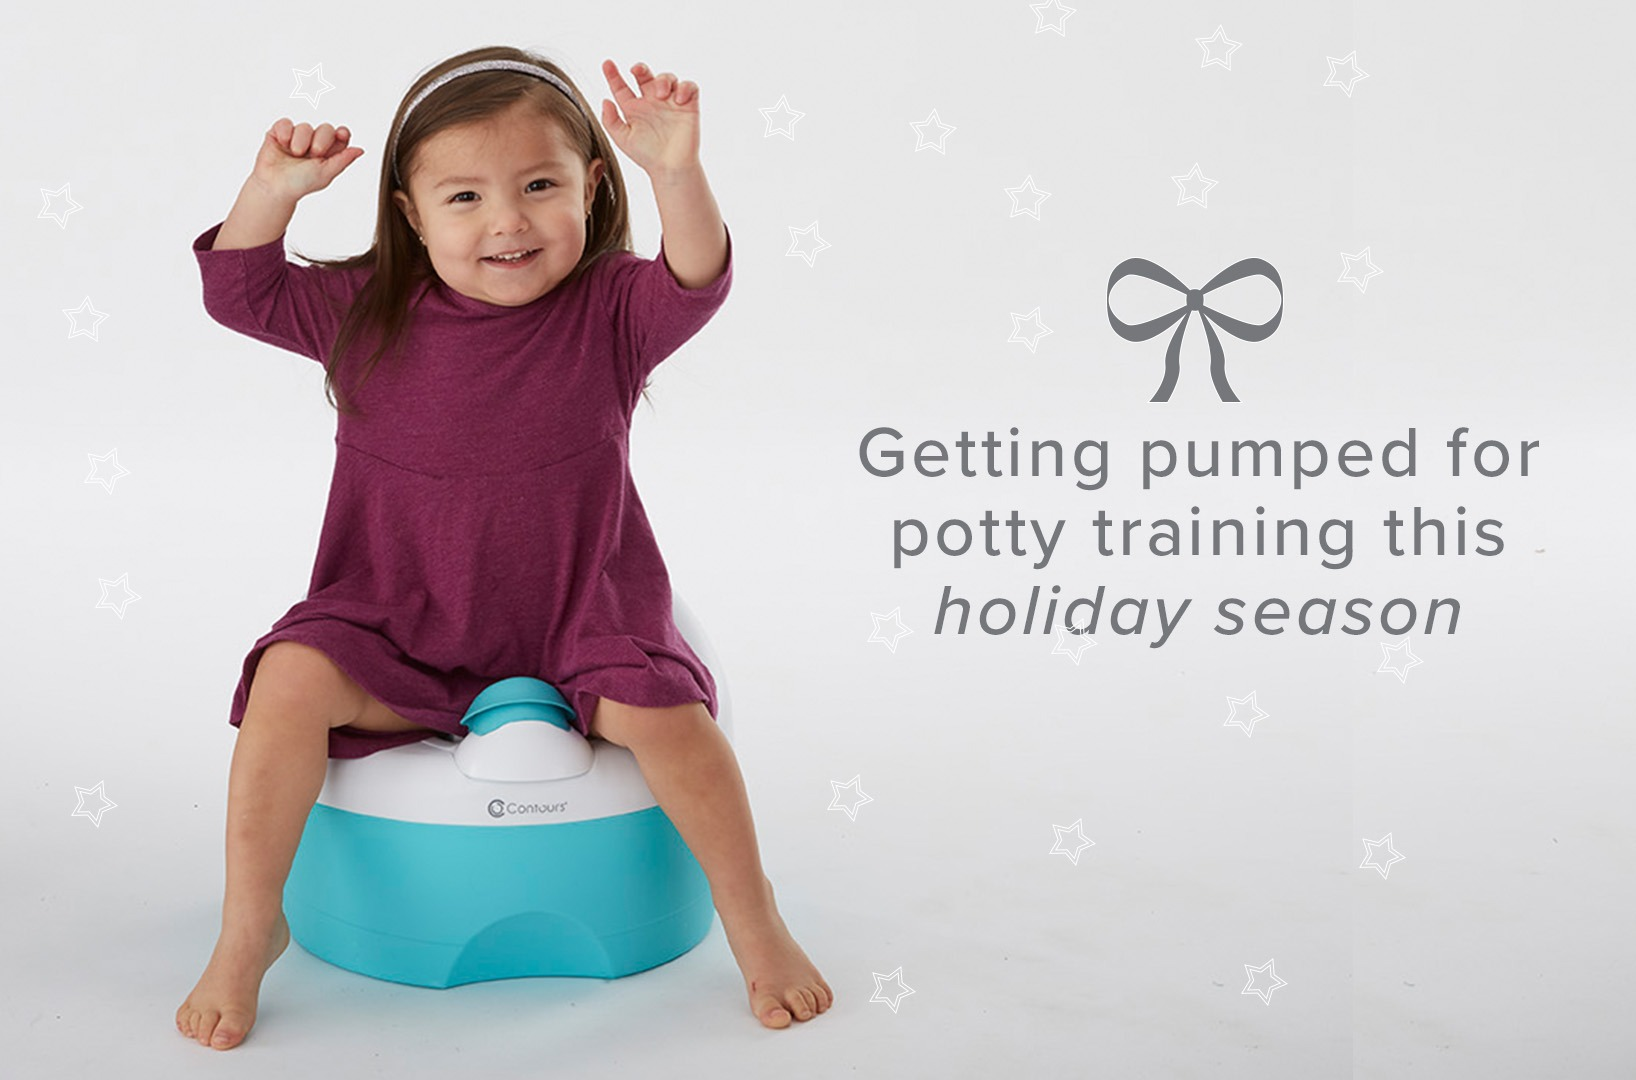 Girl on Contours Potty